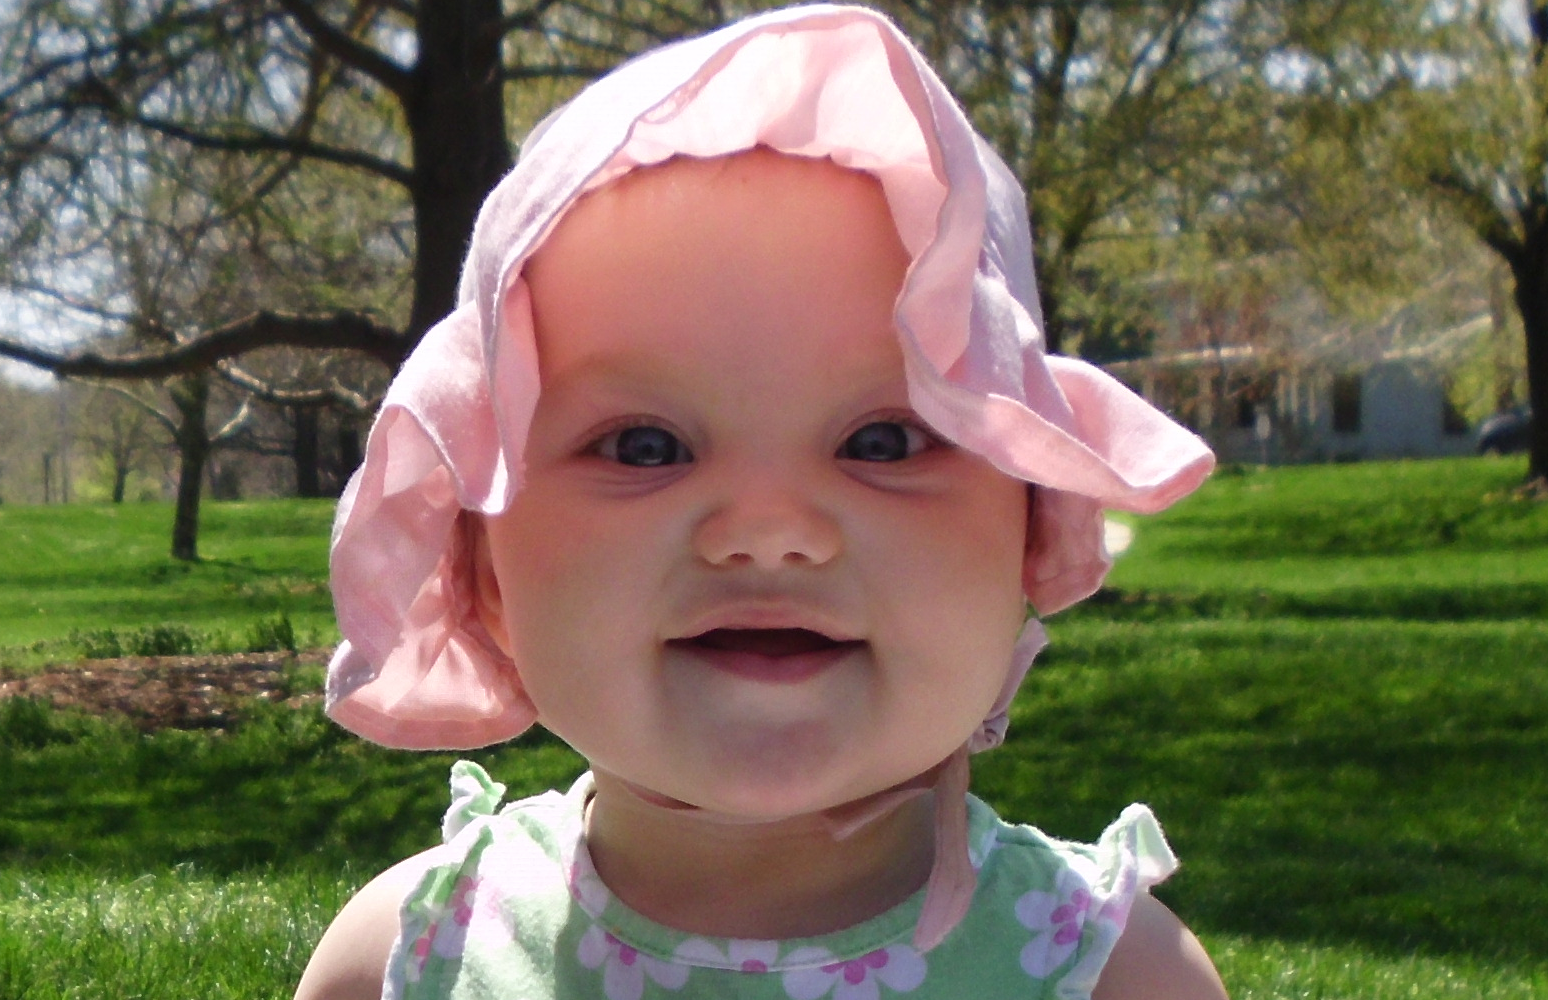 Spring Baby, Baby, Bonnet, Flowers, Girl, HQ Photo